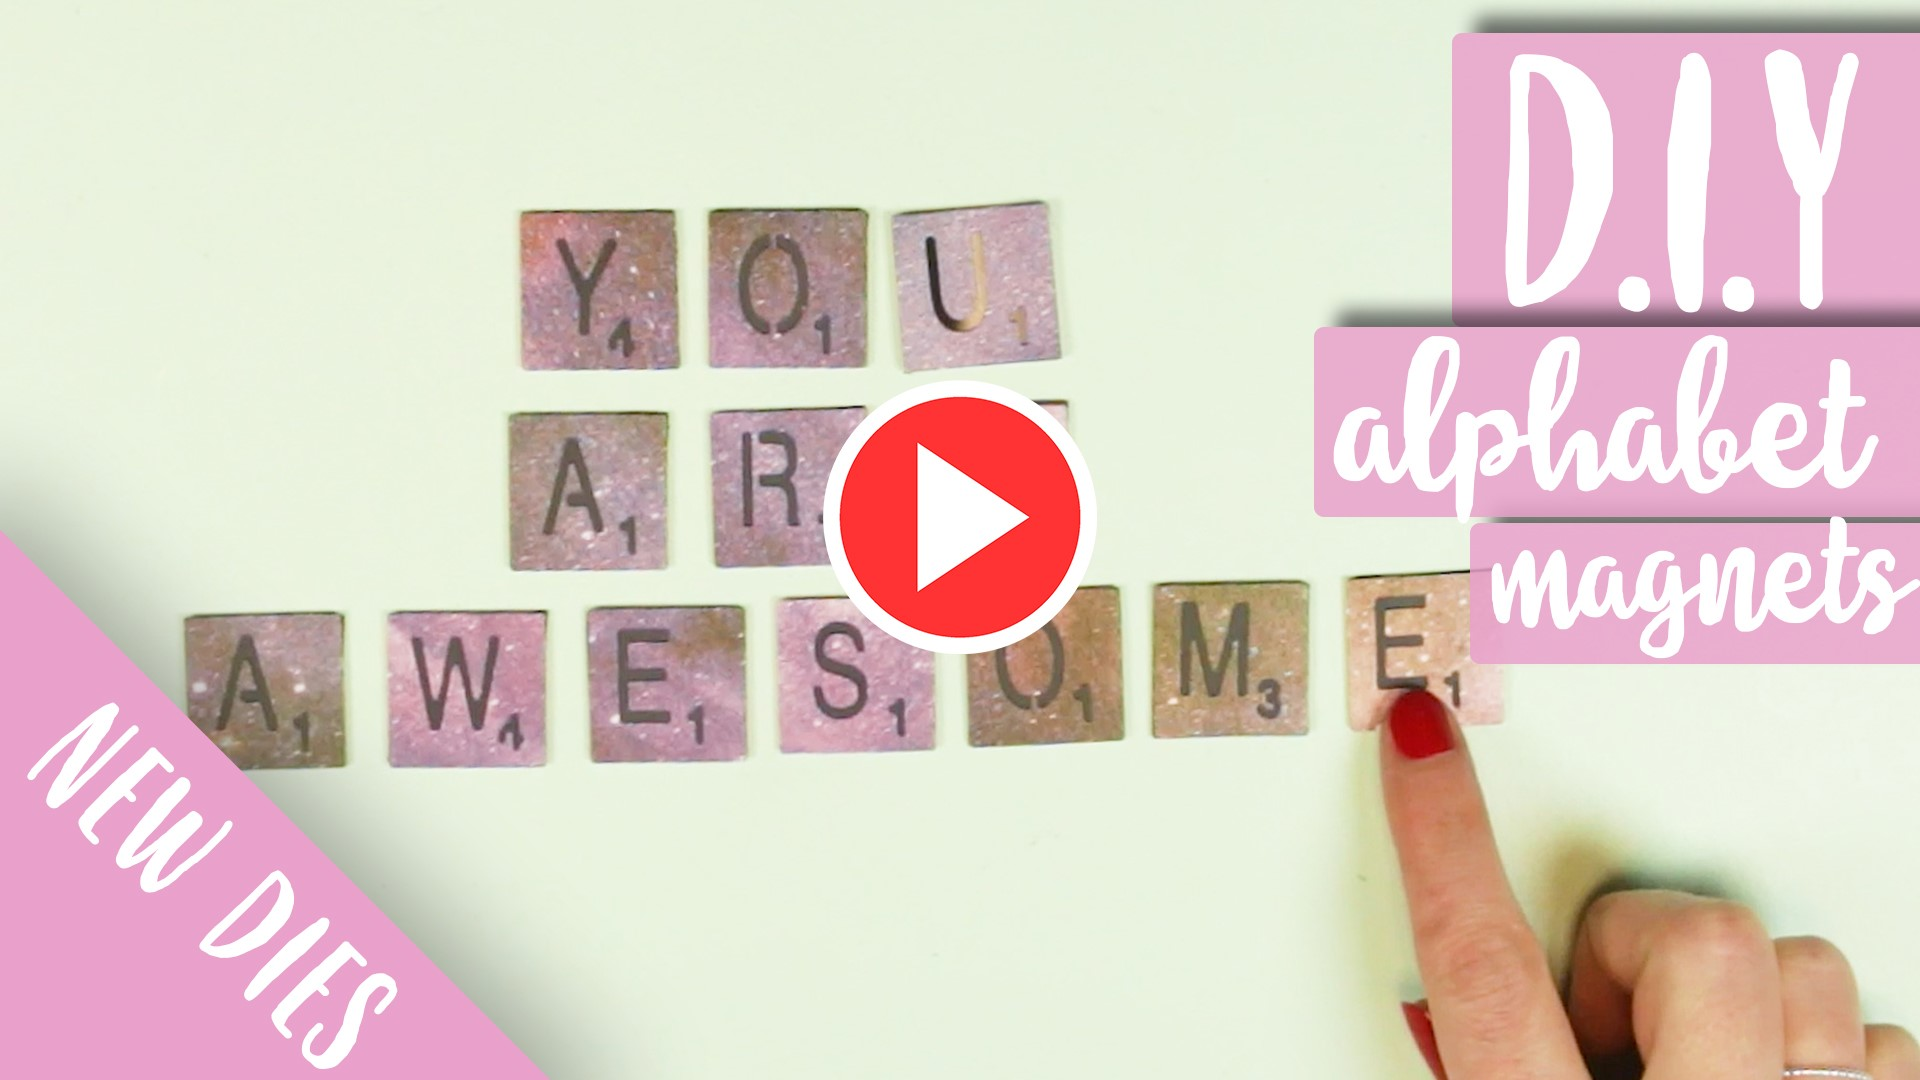 Alphabet-Tile-video-March-2018.jpg